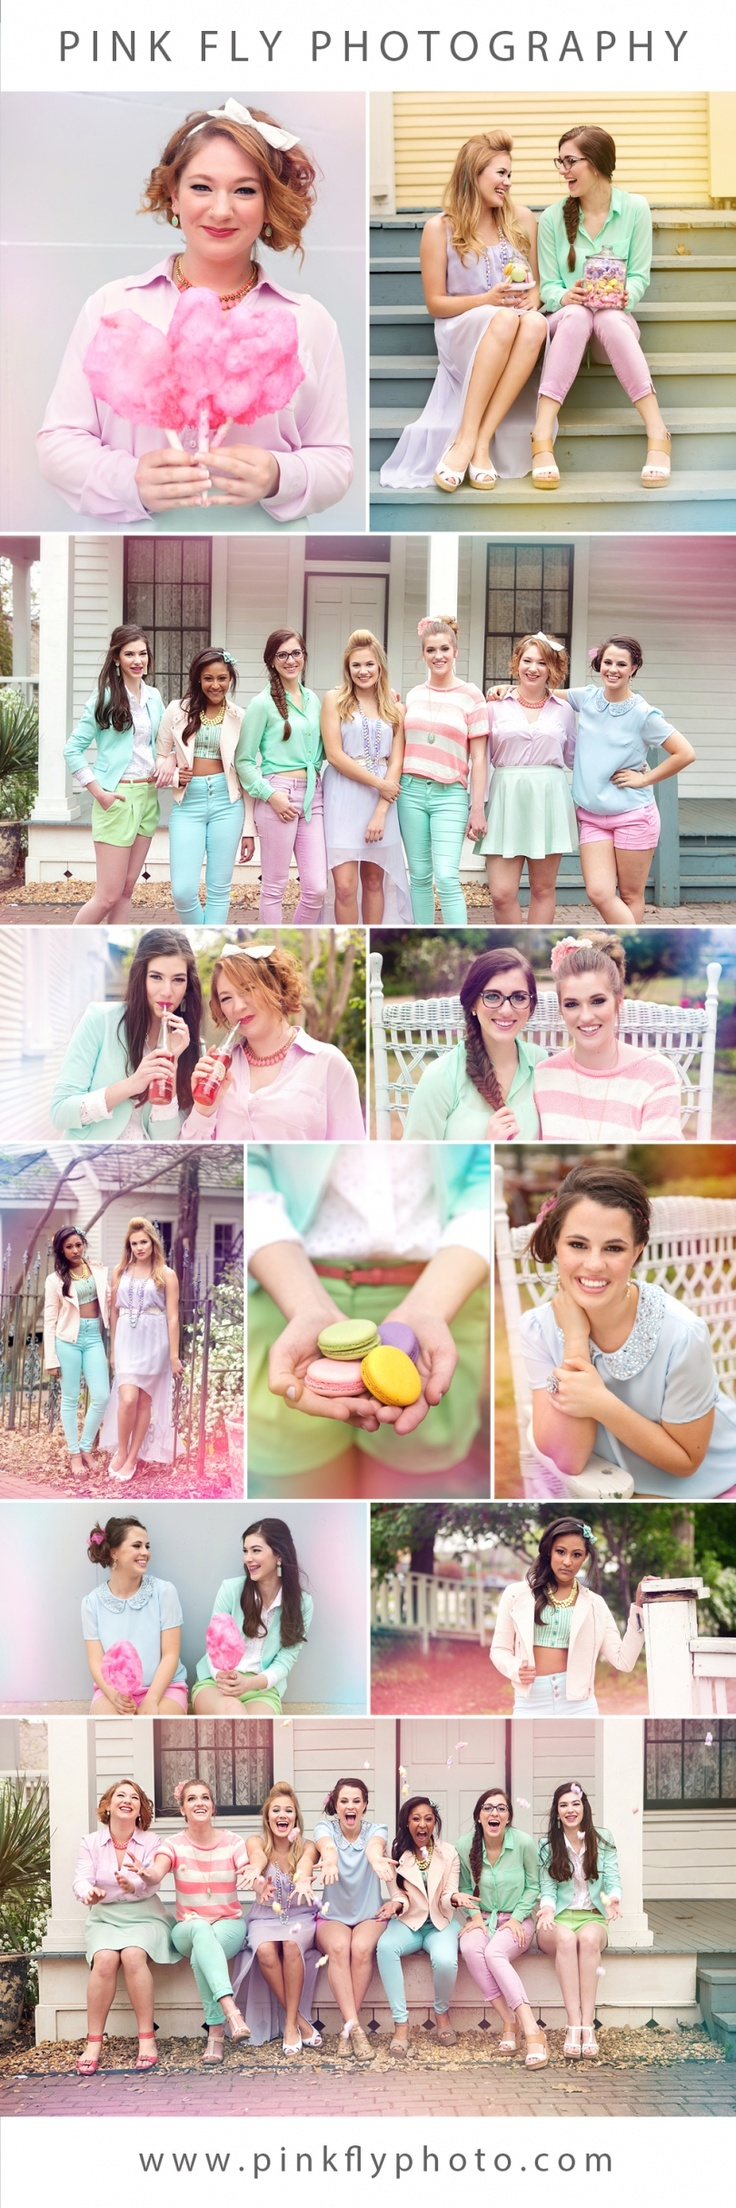 Pink Fly Photography » Dallas area photographer specializing in high school seniors | Senior Rep Model Shoot #cottoncandy #pastels #seniorreps